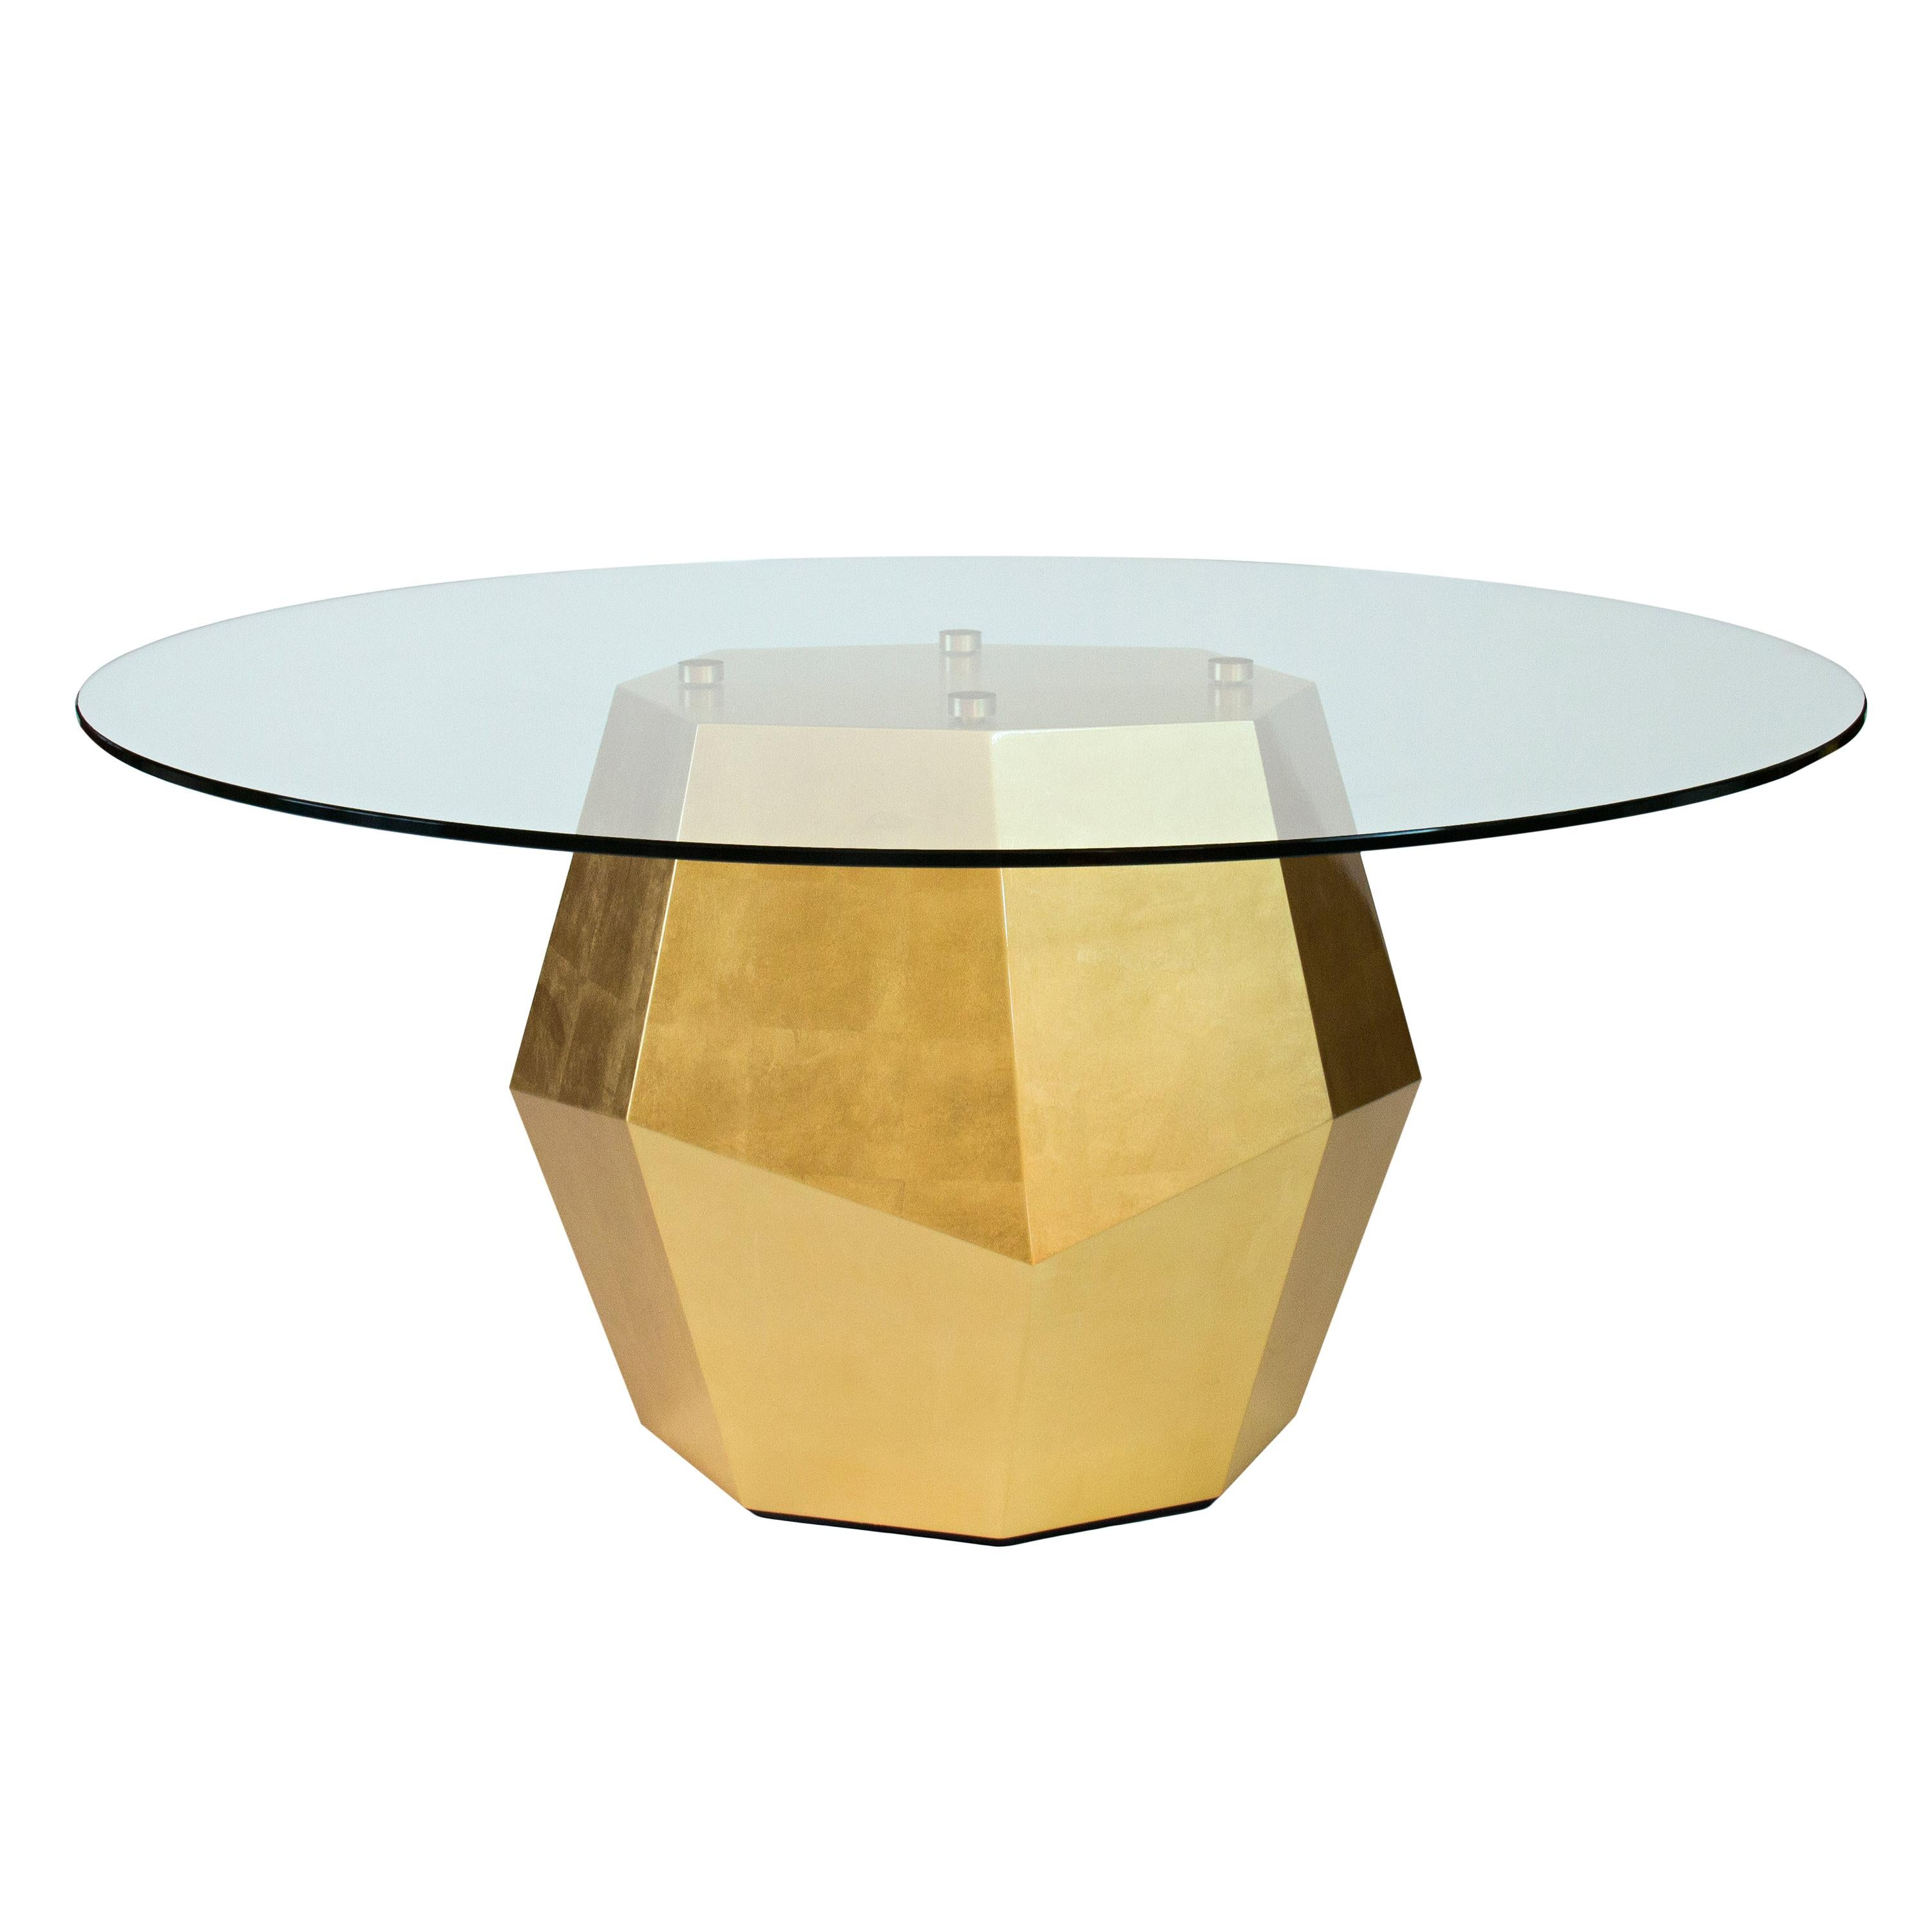 Rock Dining Table, Glass and Gold Leaf, InsidherLand by Joana Santos Barbosa